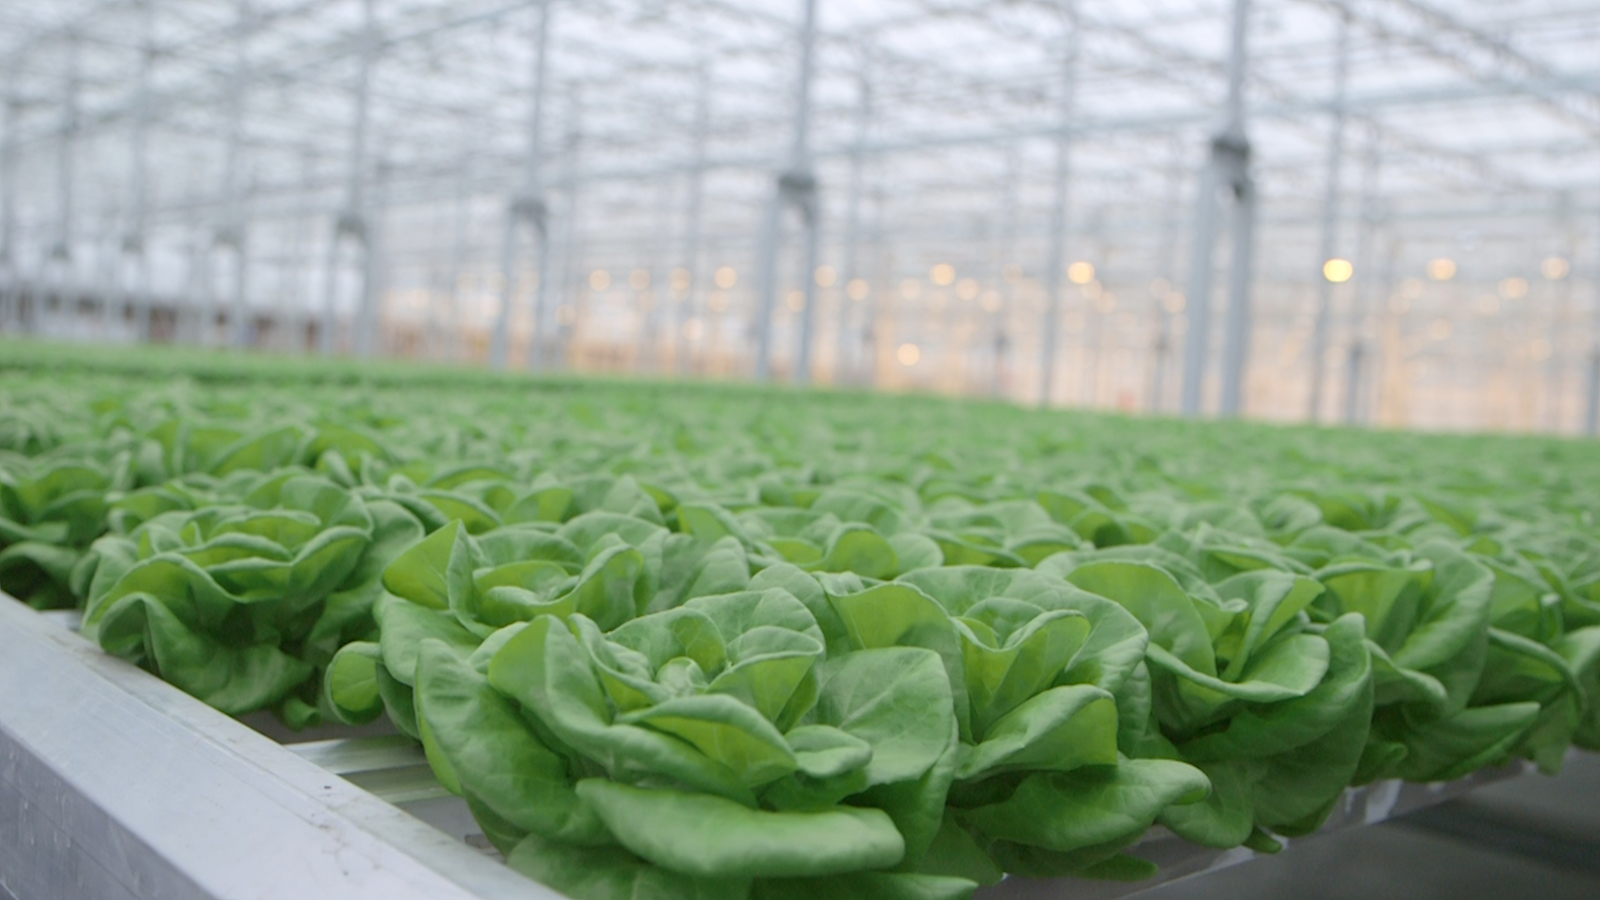 Massive Greenhouse Will Allow This City to Grow Produce Year-Round